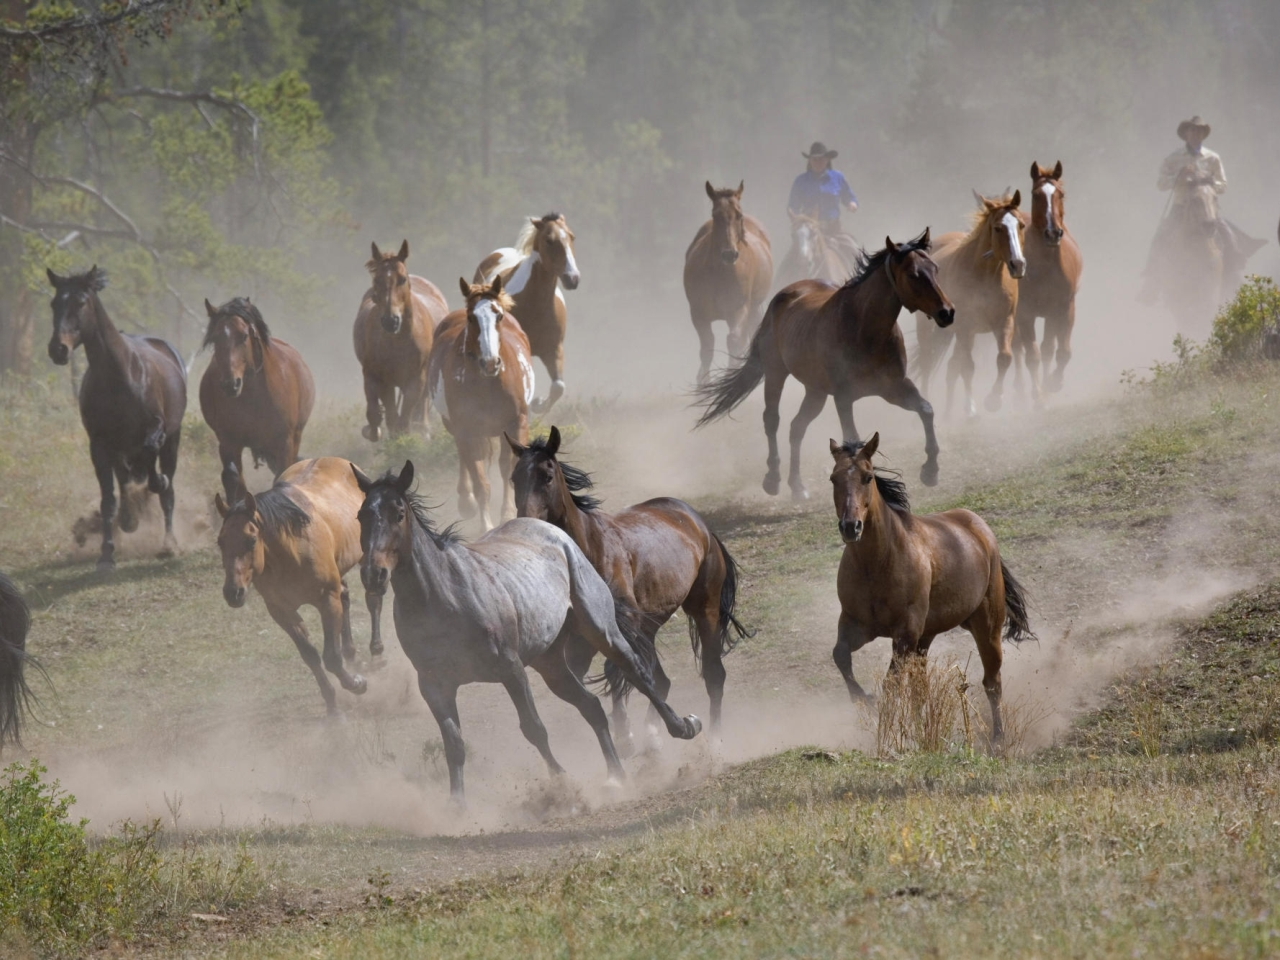 A herd of horses and cowboy